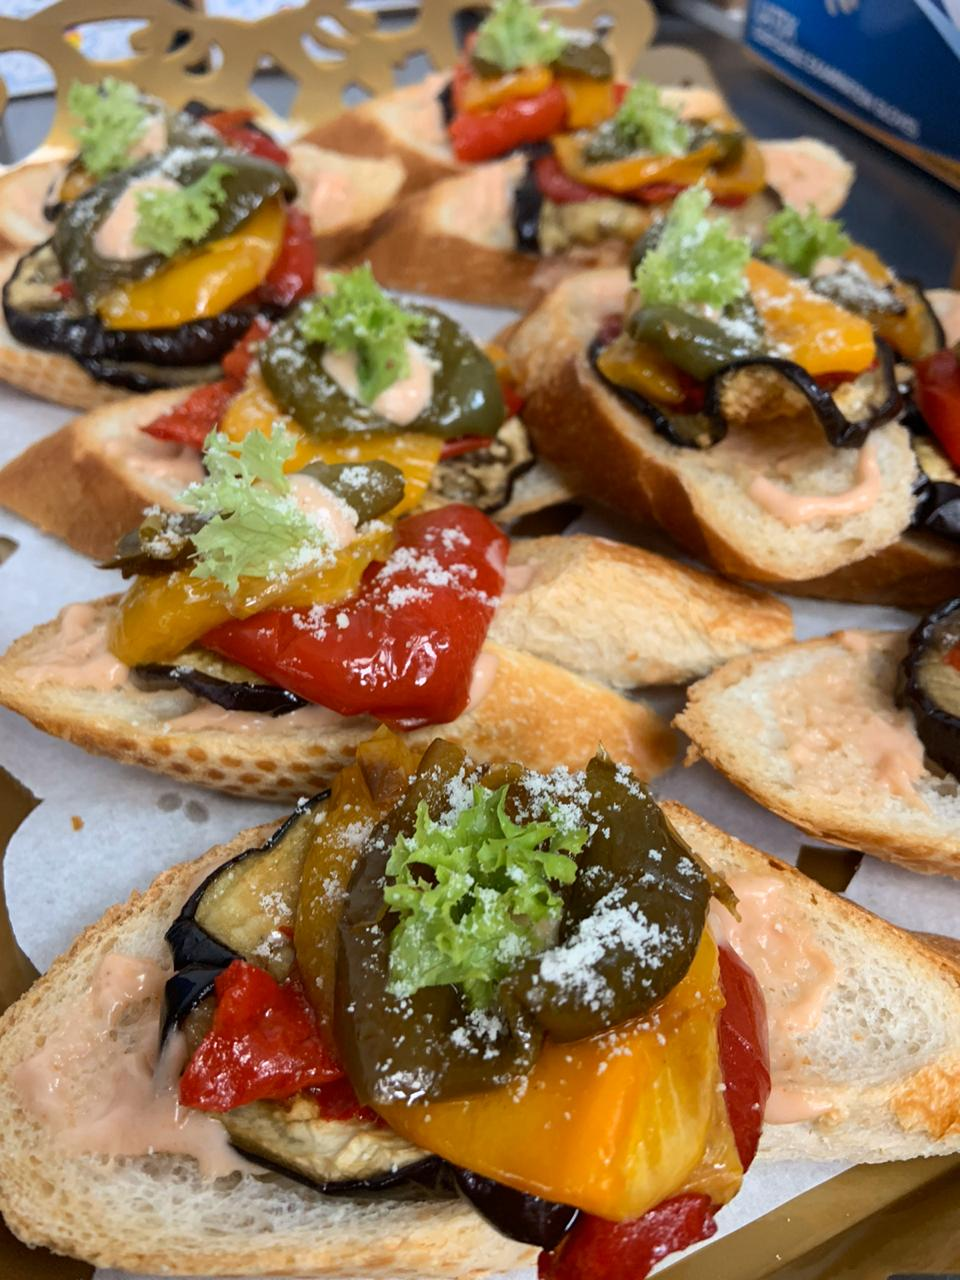 Yacht Catering in Dubai - Appetizers 1